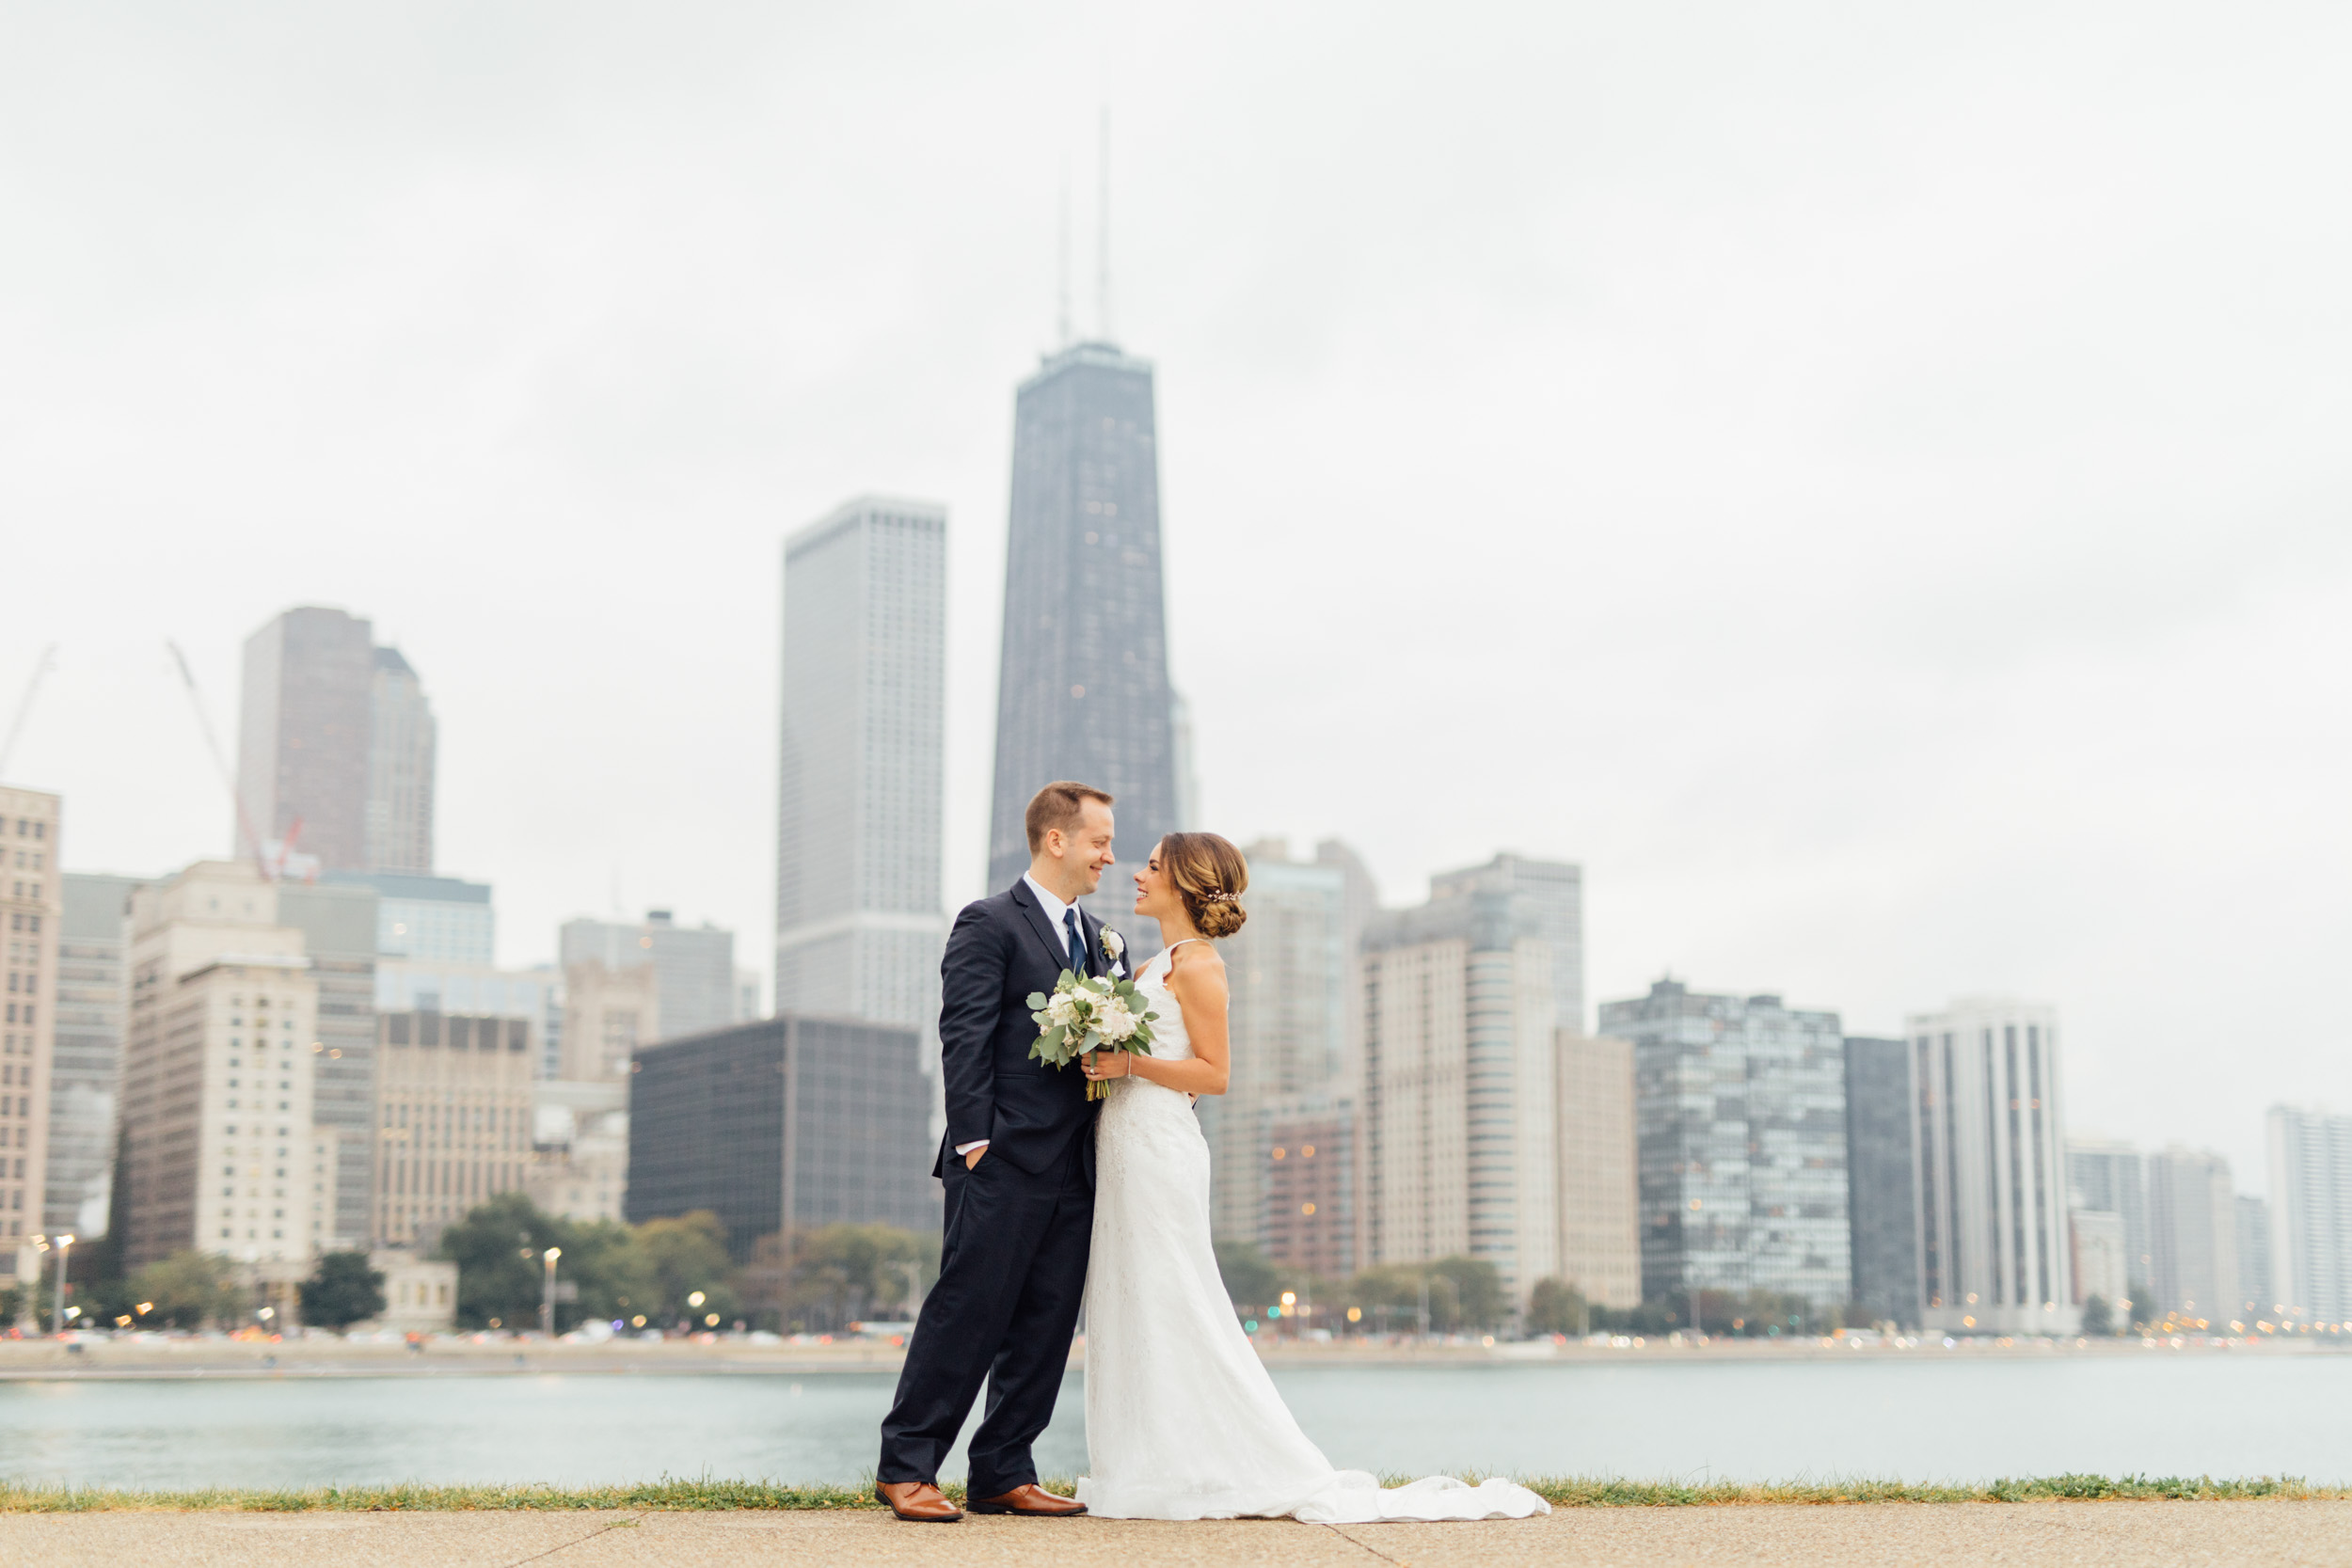 Downtown Chicago Wedding_Polly C Photography 1706172543.jpg